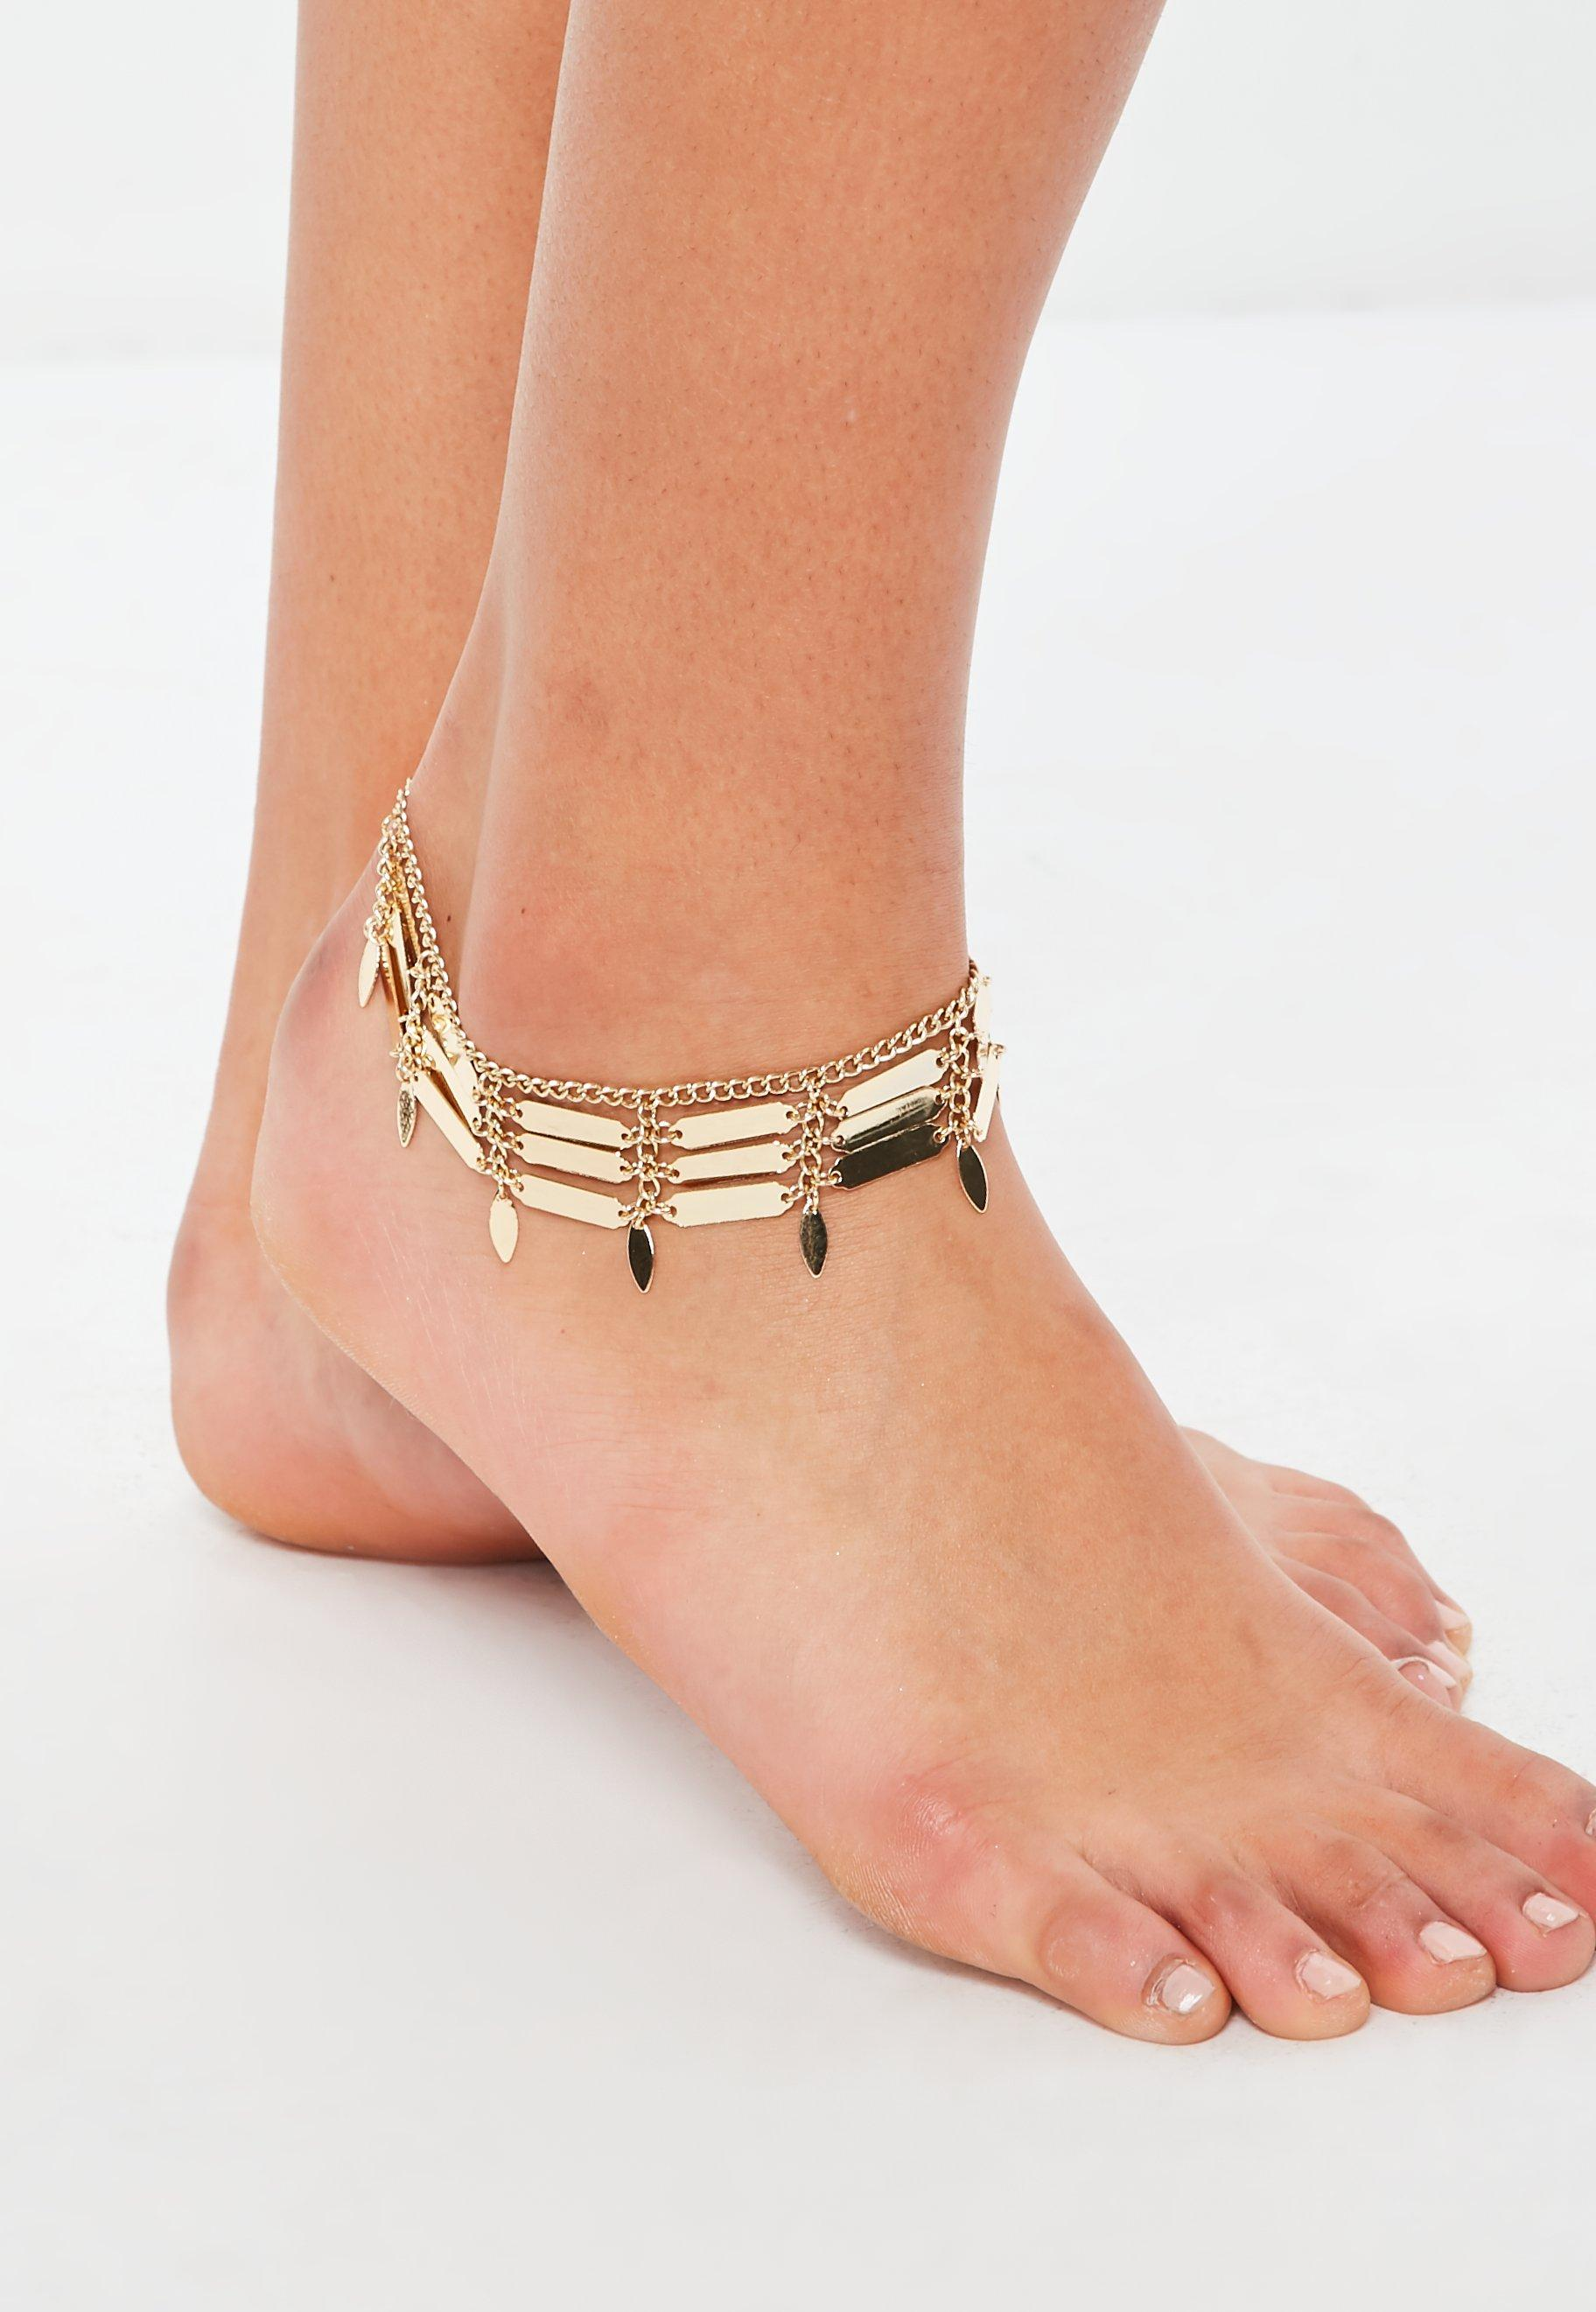 buy anklet from necklace s products store tomorrow shea katiico jewellery katiicojewellery